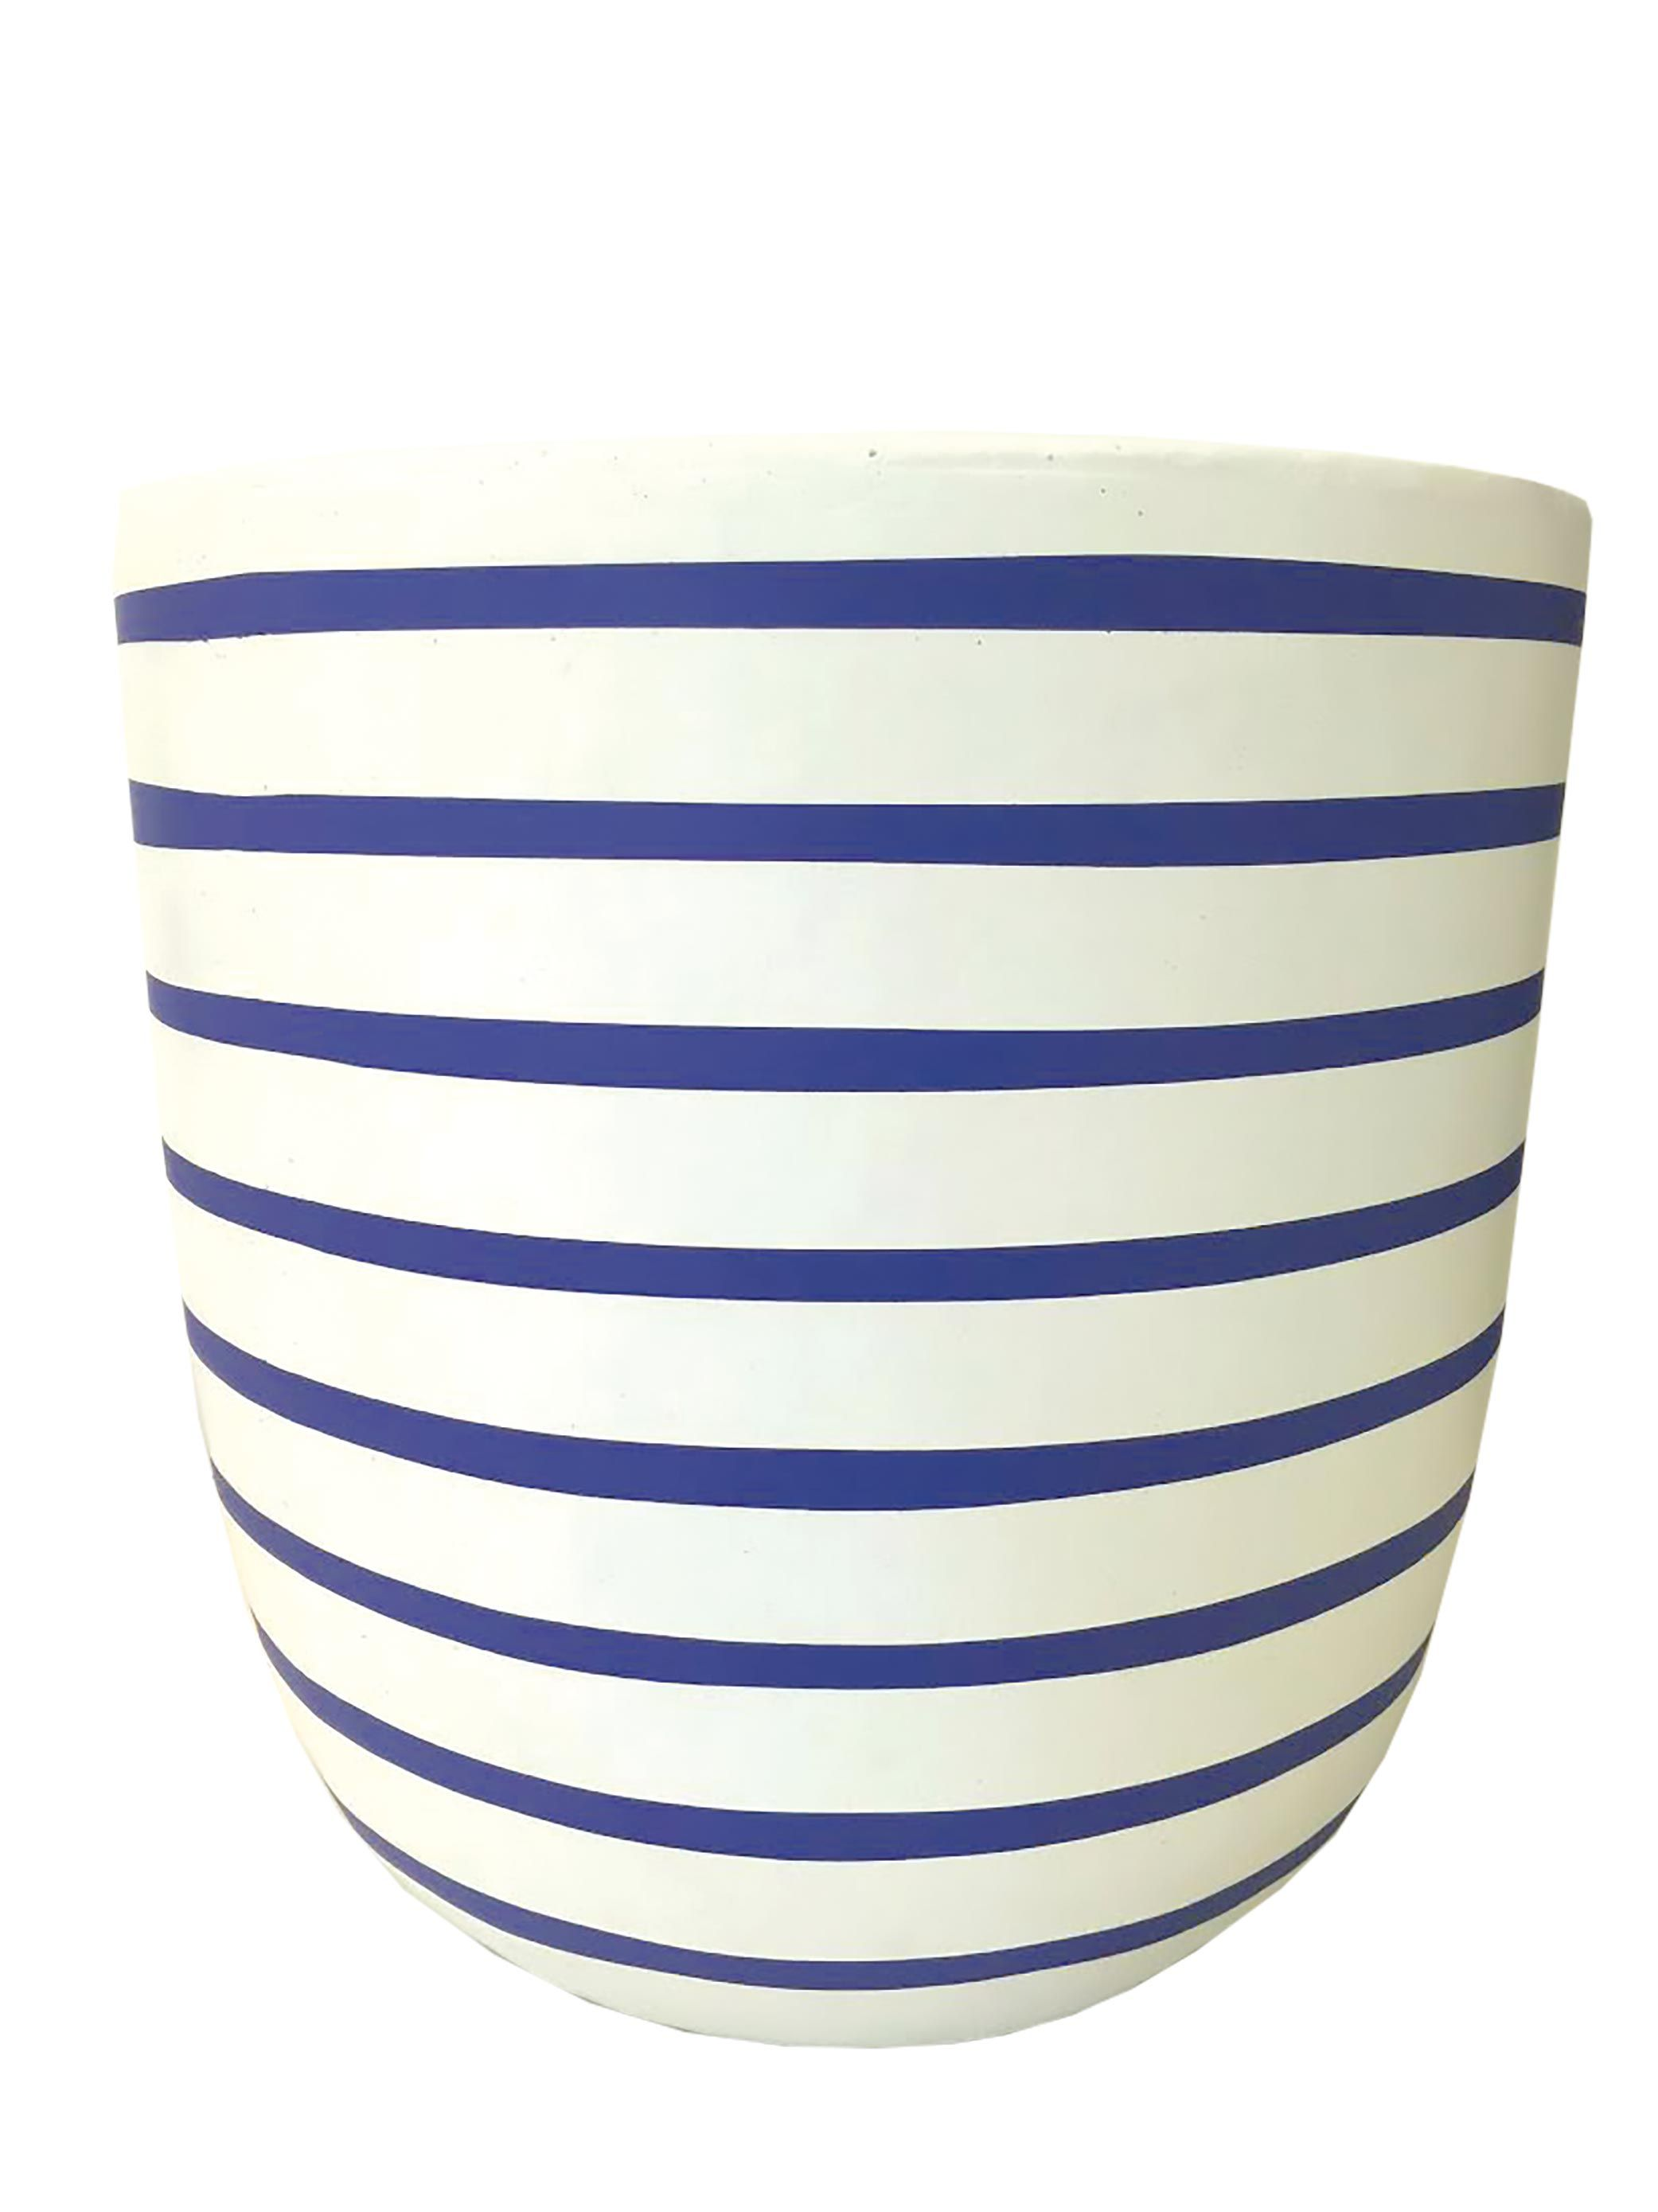 This Pinstripe pot in electric blue from Design Twins creates a Palm Springs style.